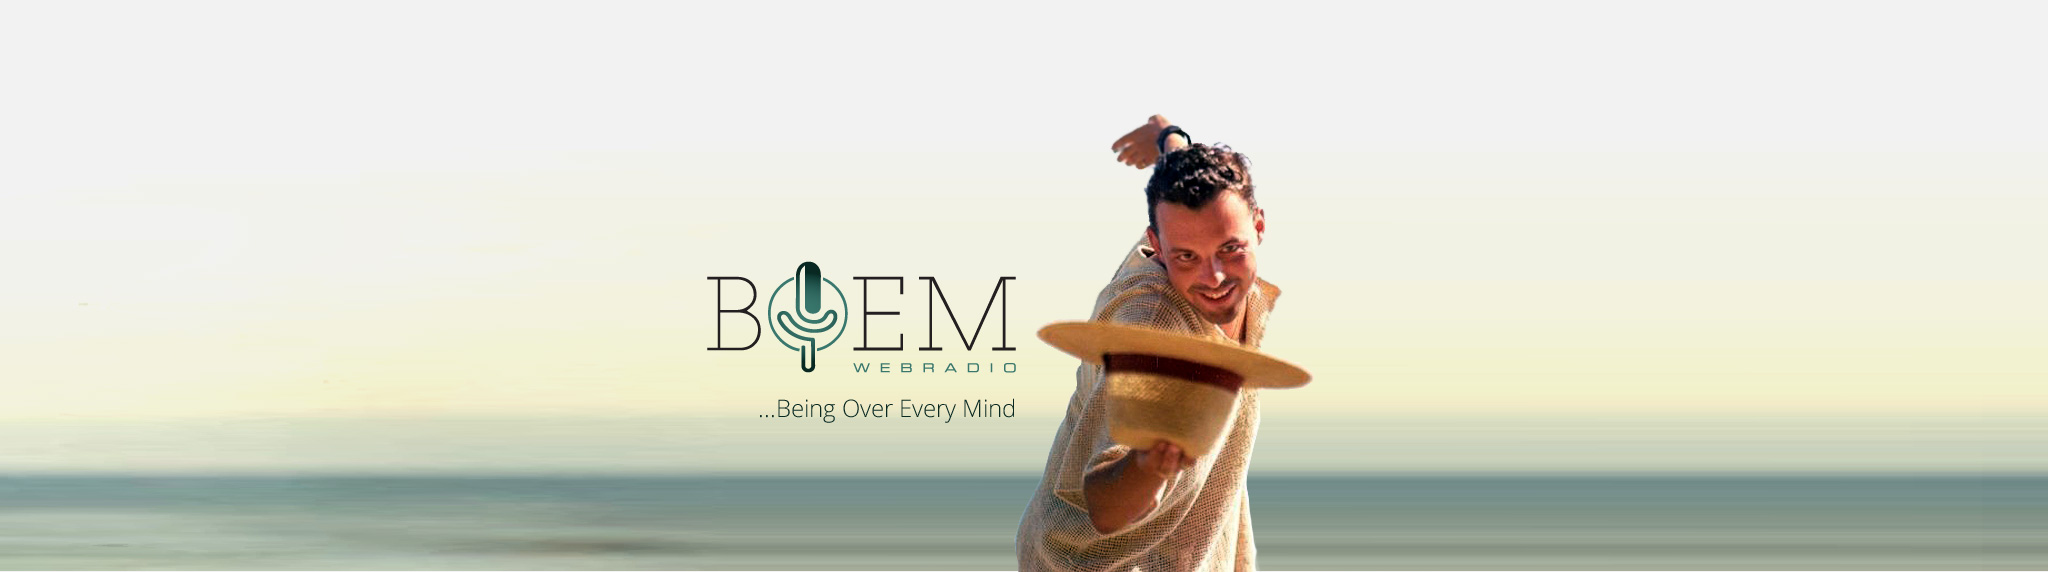 Boem Webradio - Being Over Every Mind